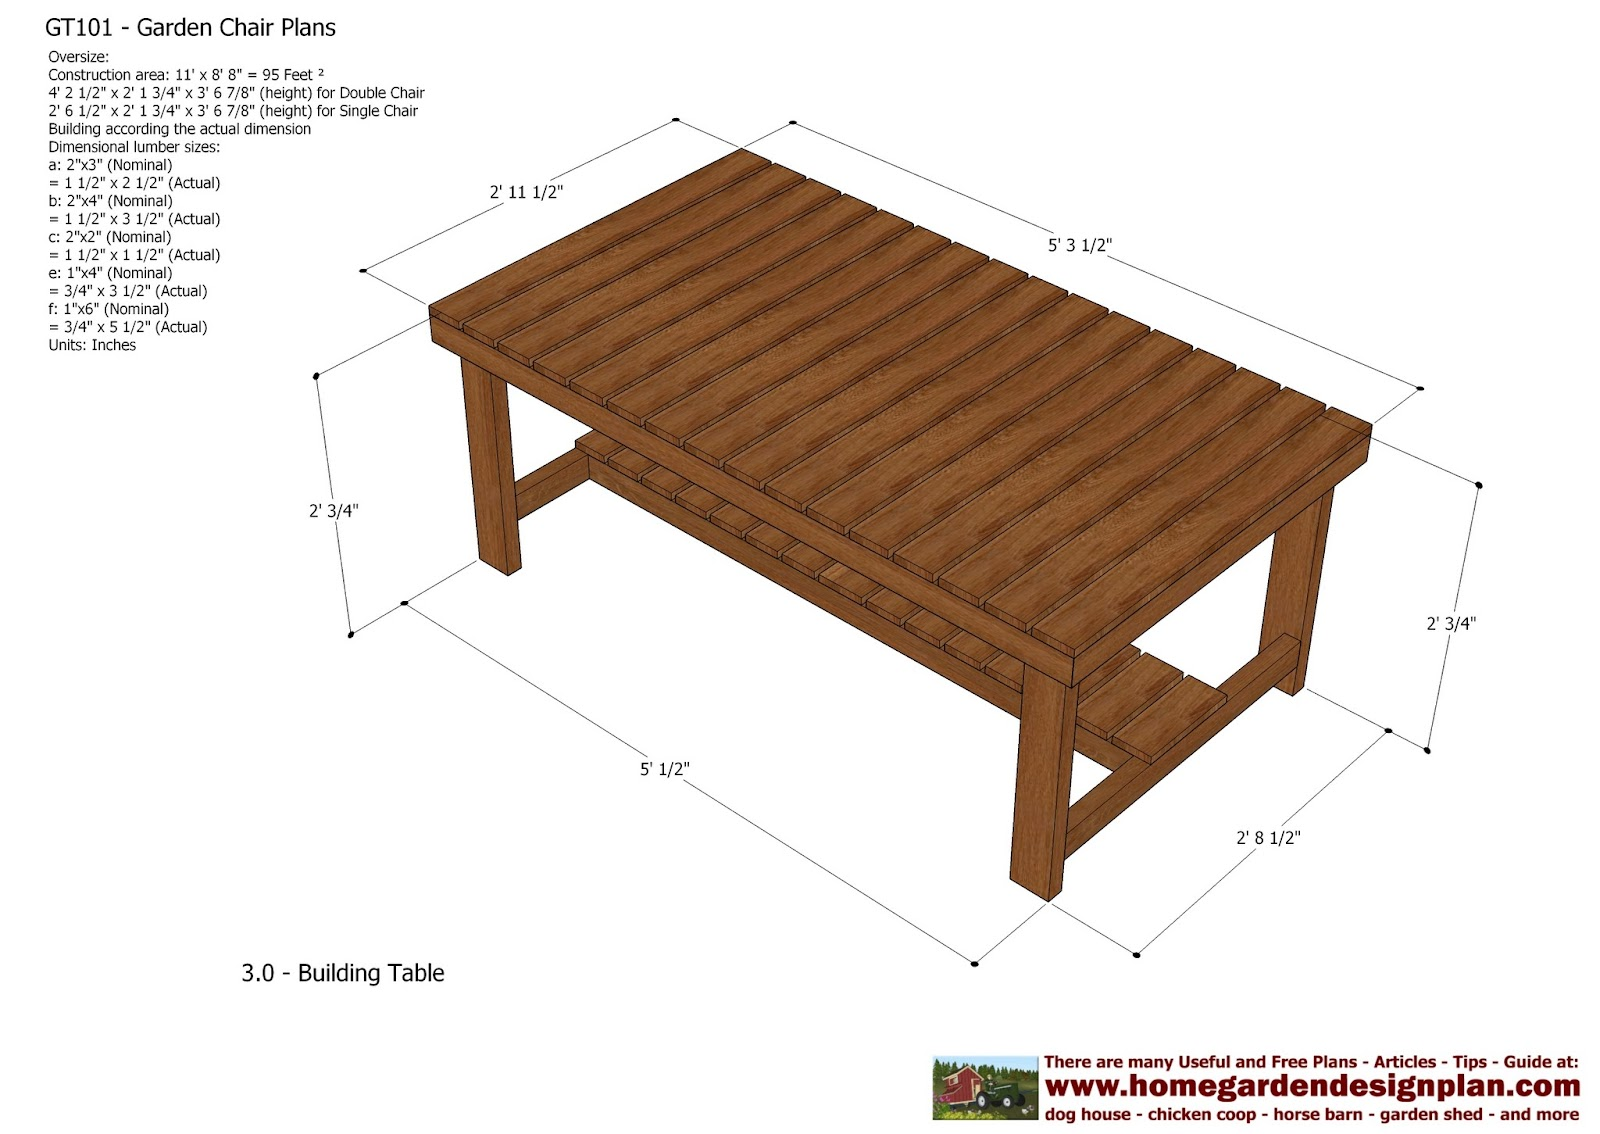 Rudy easy teak outdoor furniture plans wood us uk ca